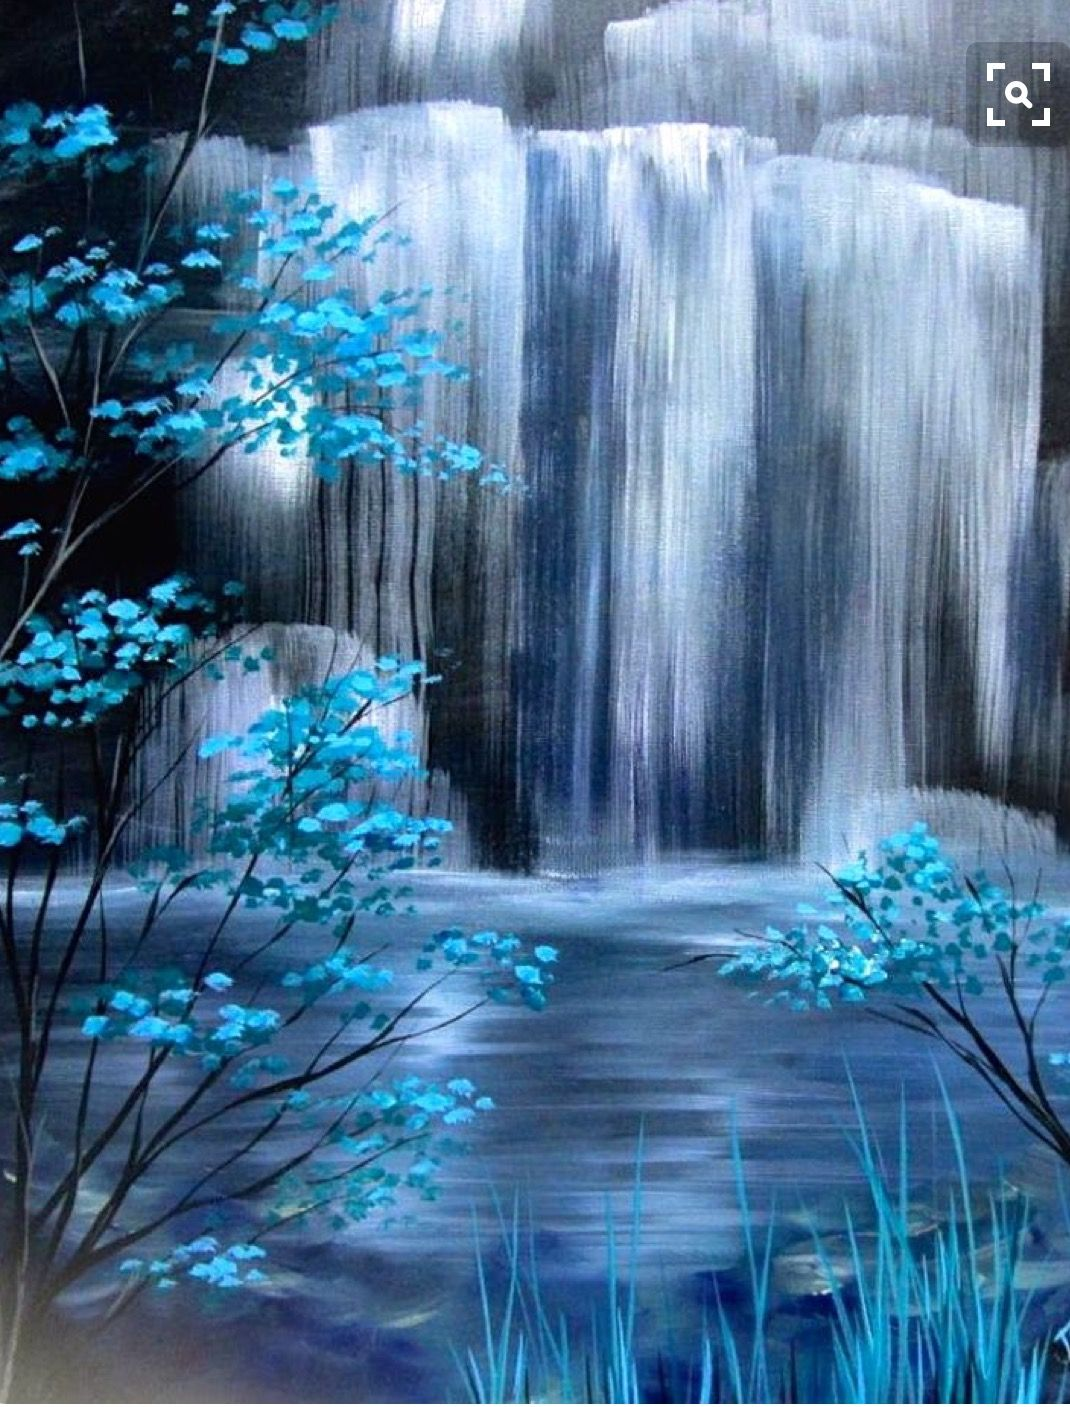 Pin By American High School On Uncorked Artist Sc Waterfall Paintings Landscape Paintings Art Painting